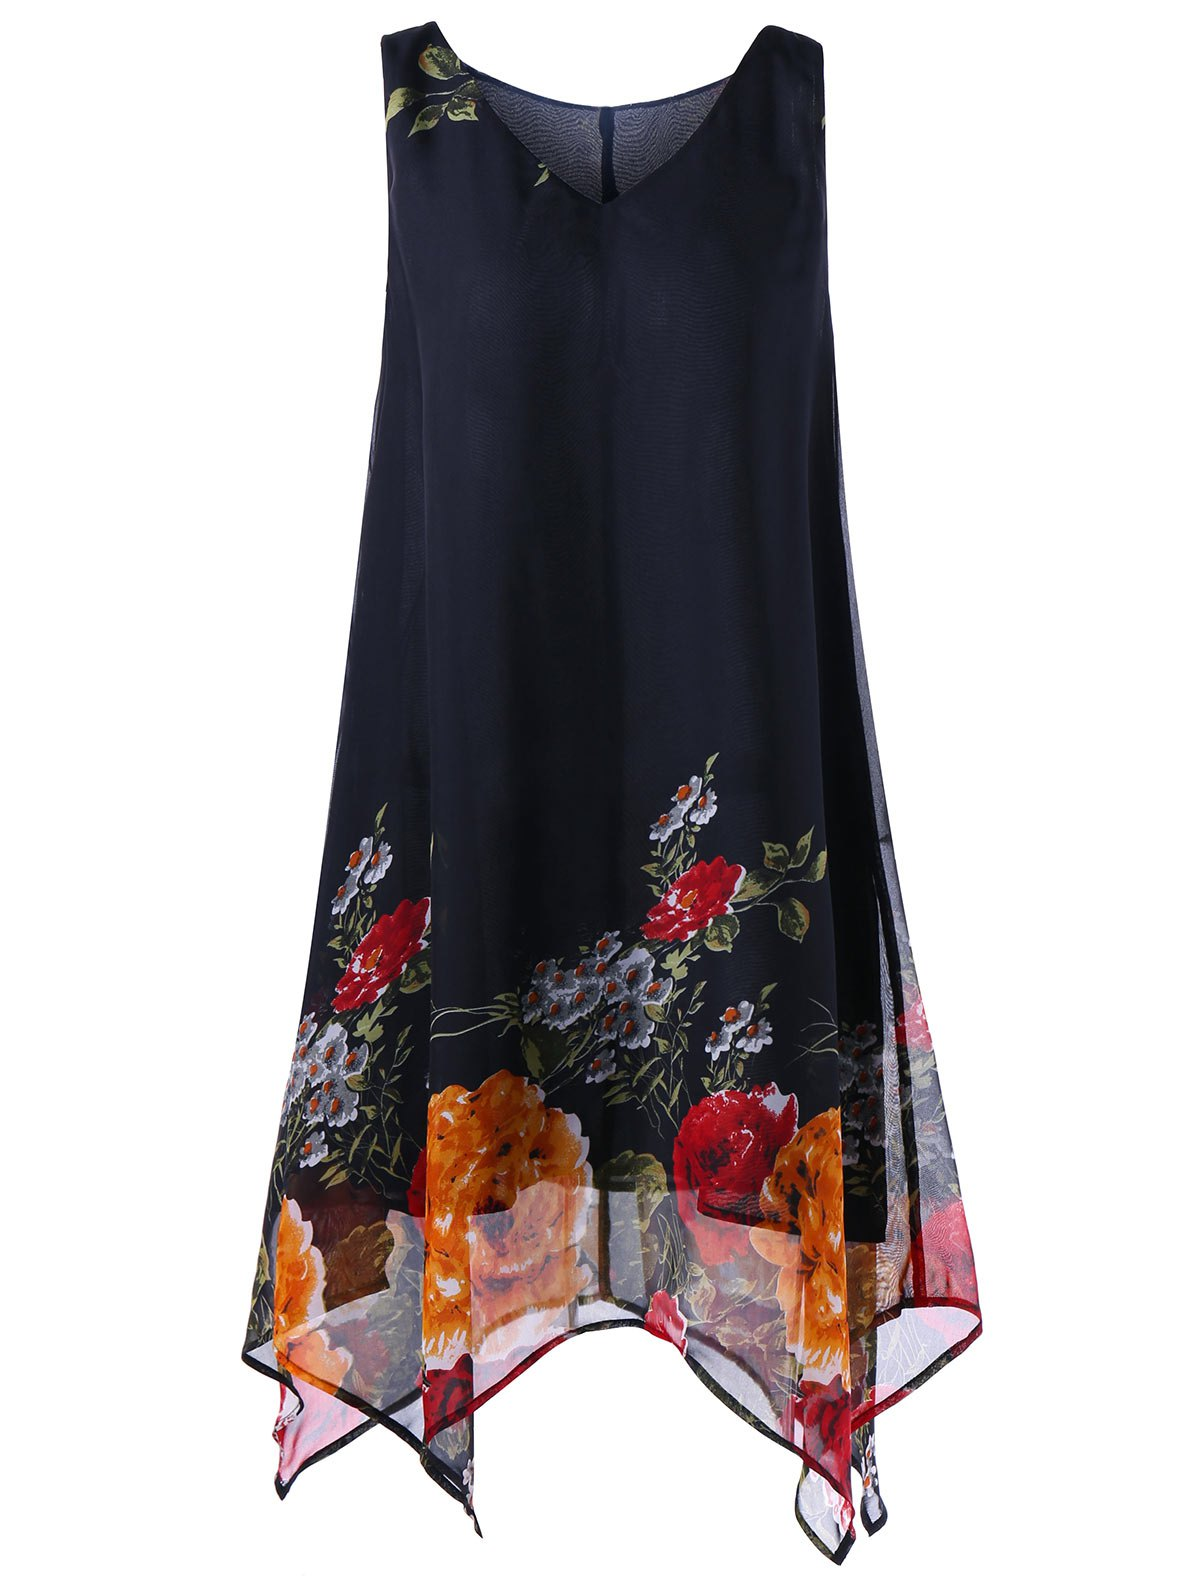 Plus Size V Neck Floral Handkerchief Dress plus size floral embroidered v neck dress